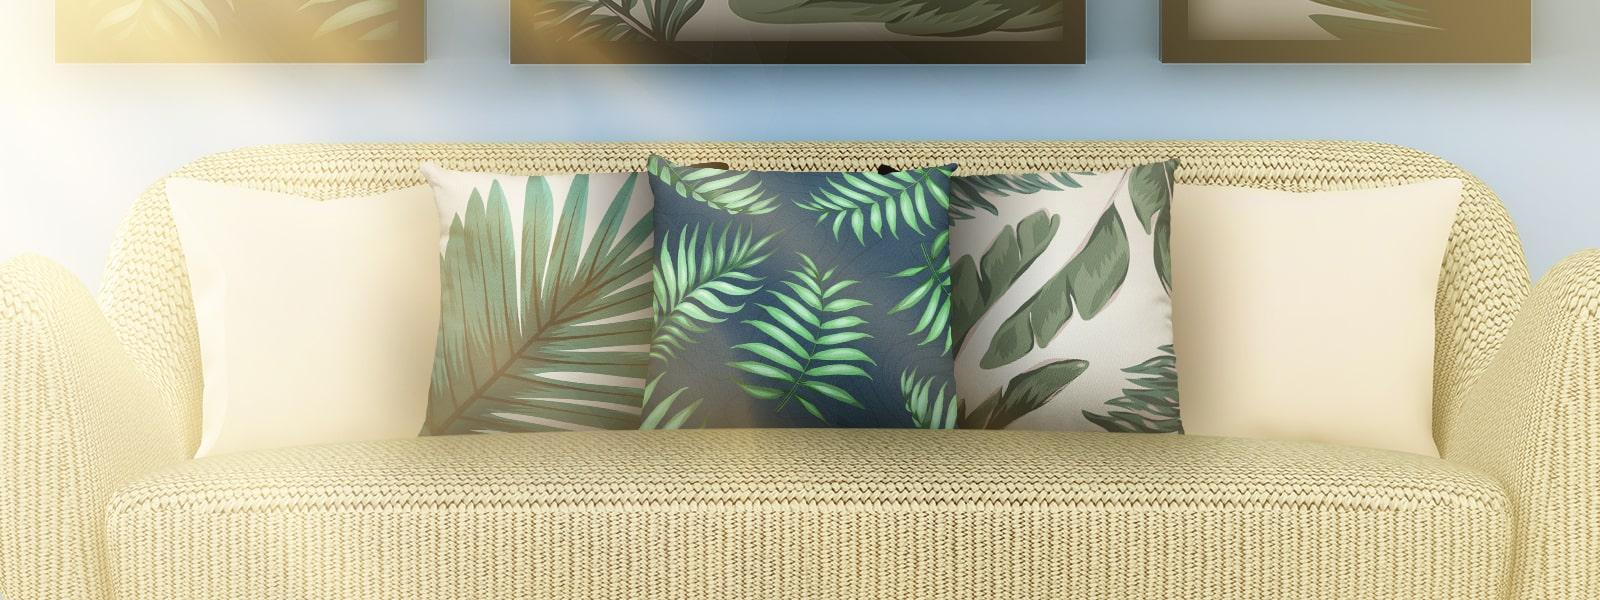 Best Indoor Plant Decor Ideas for your Home